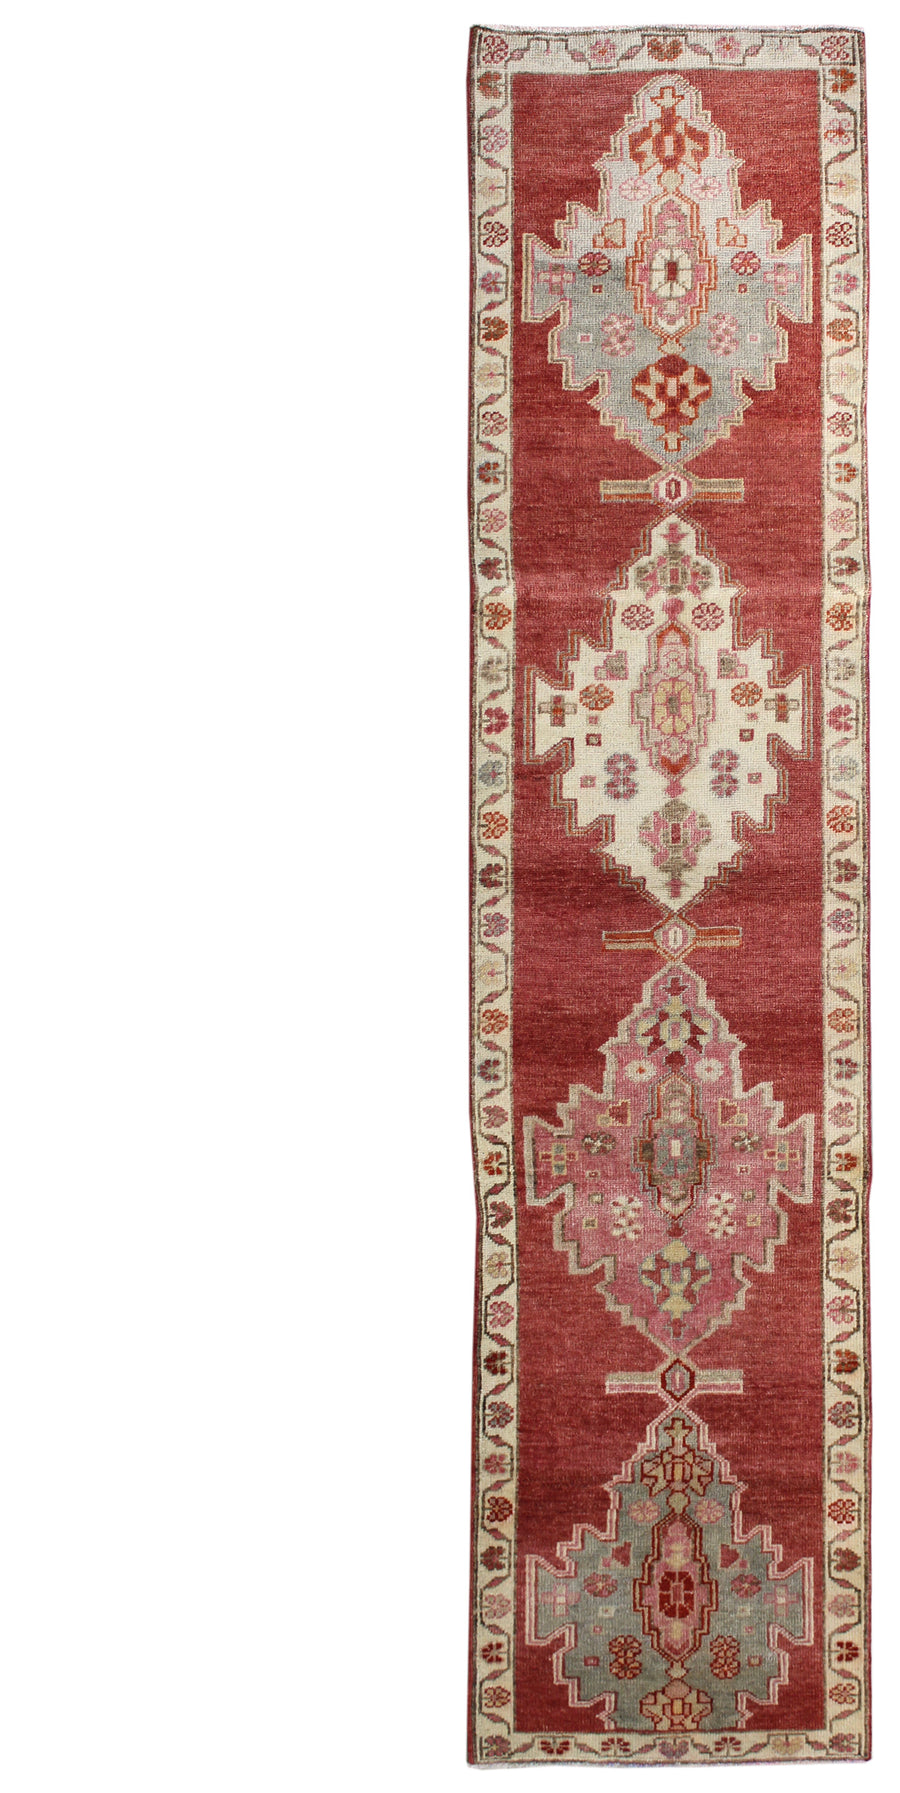 KURDISH HANDKNOTTED RUG, J54117